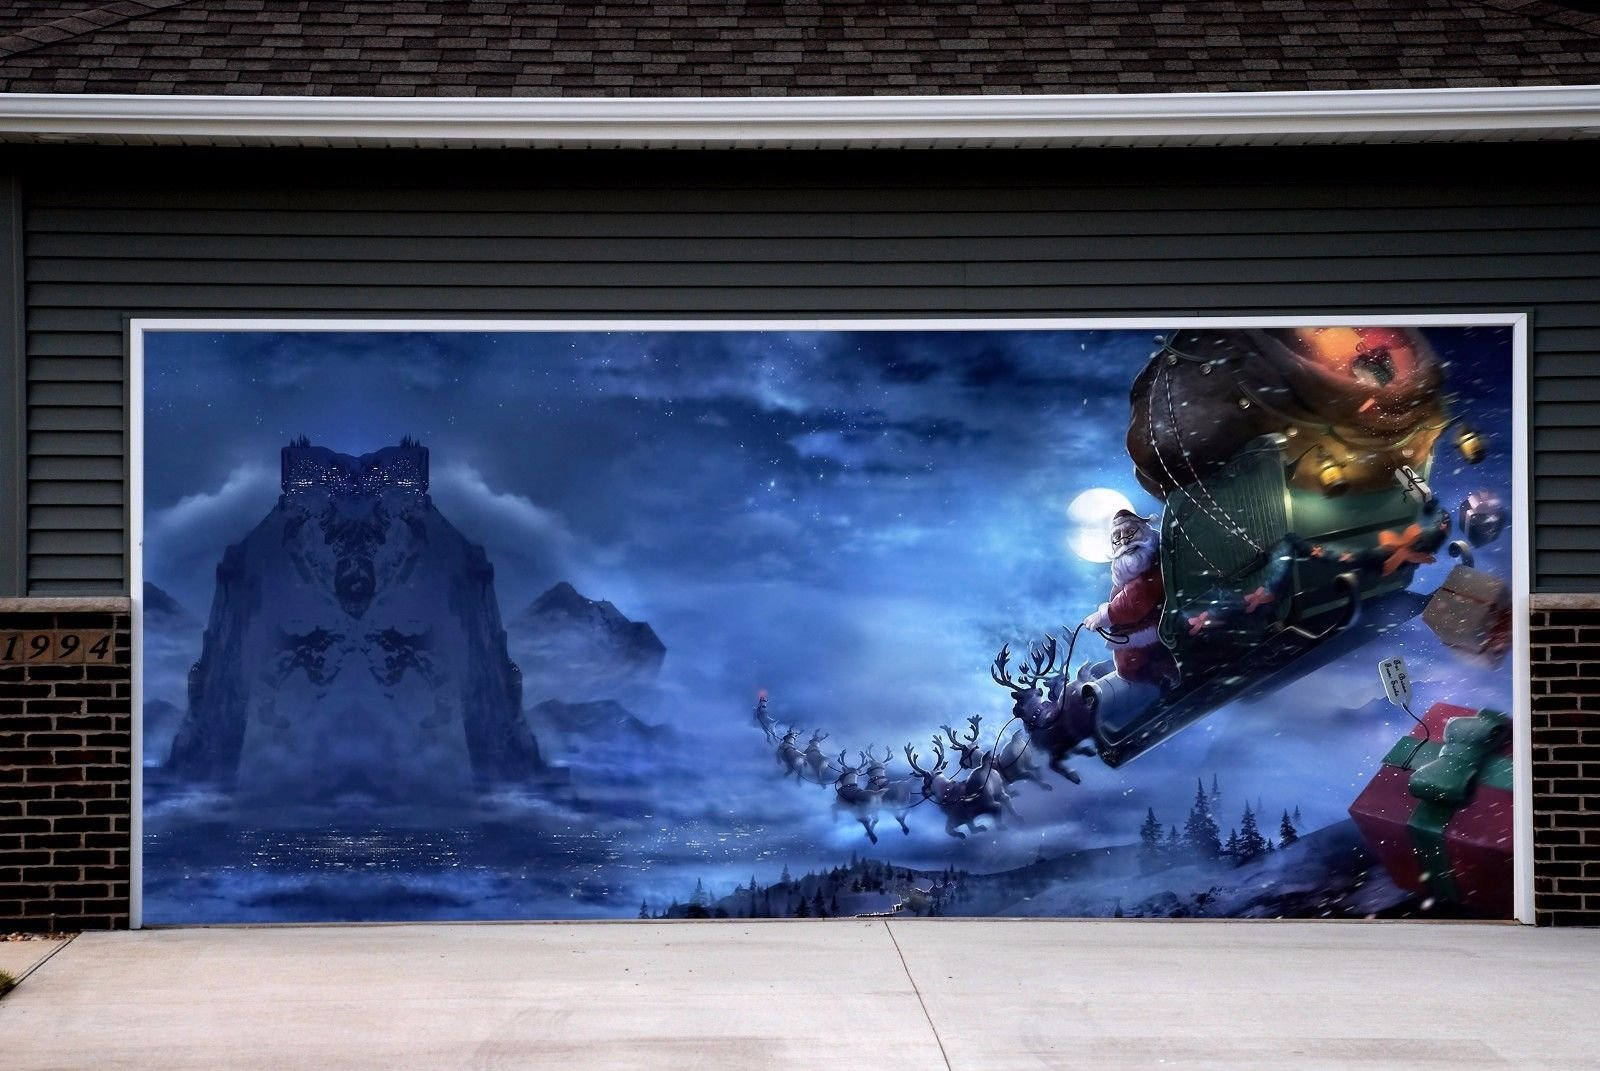 3D Billboard for 2 Car Garage Door Christmas Garage Door Decorations Full Color Holiday Covers Banners Outdoor Murals size 82x188 inches Merry Christmas House Decor DAV22